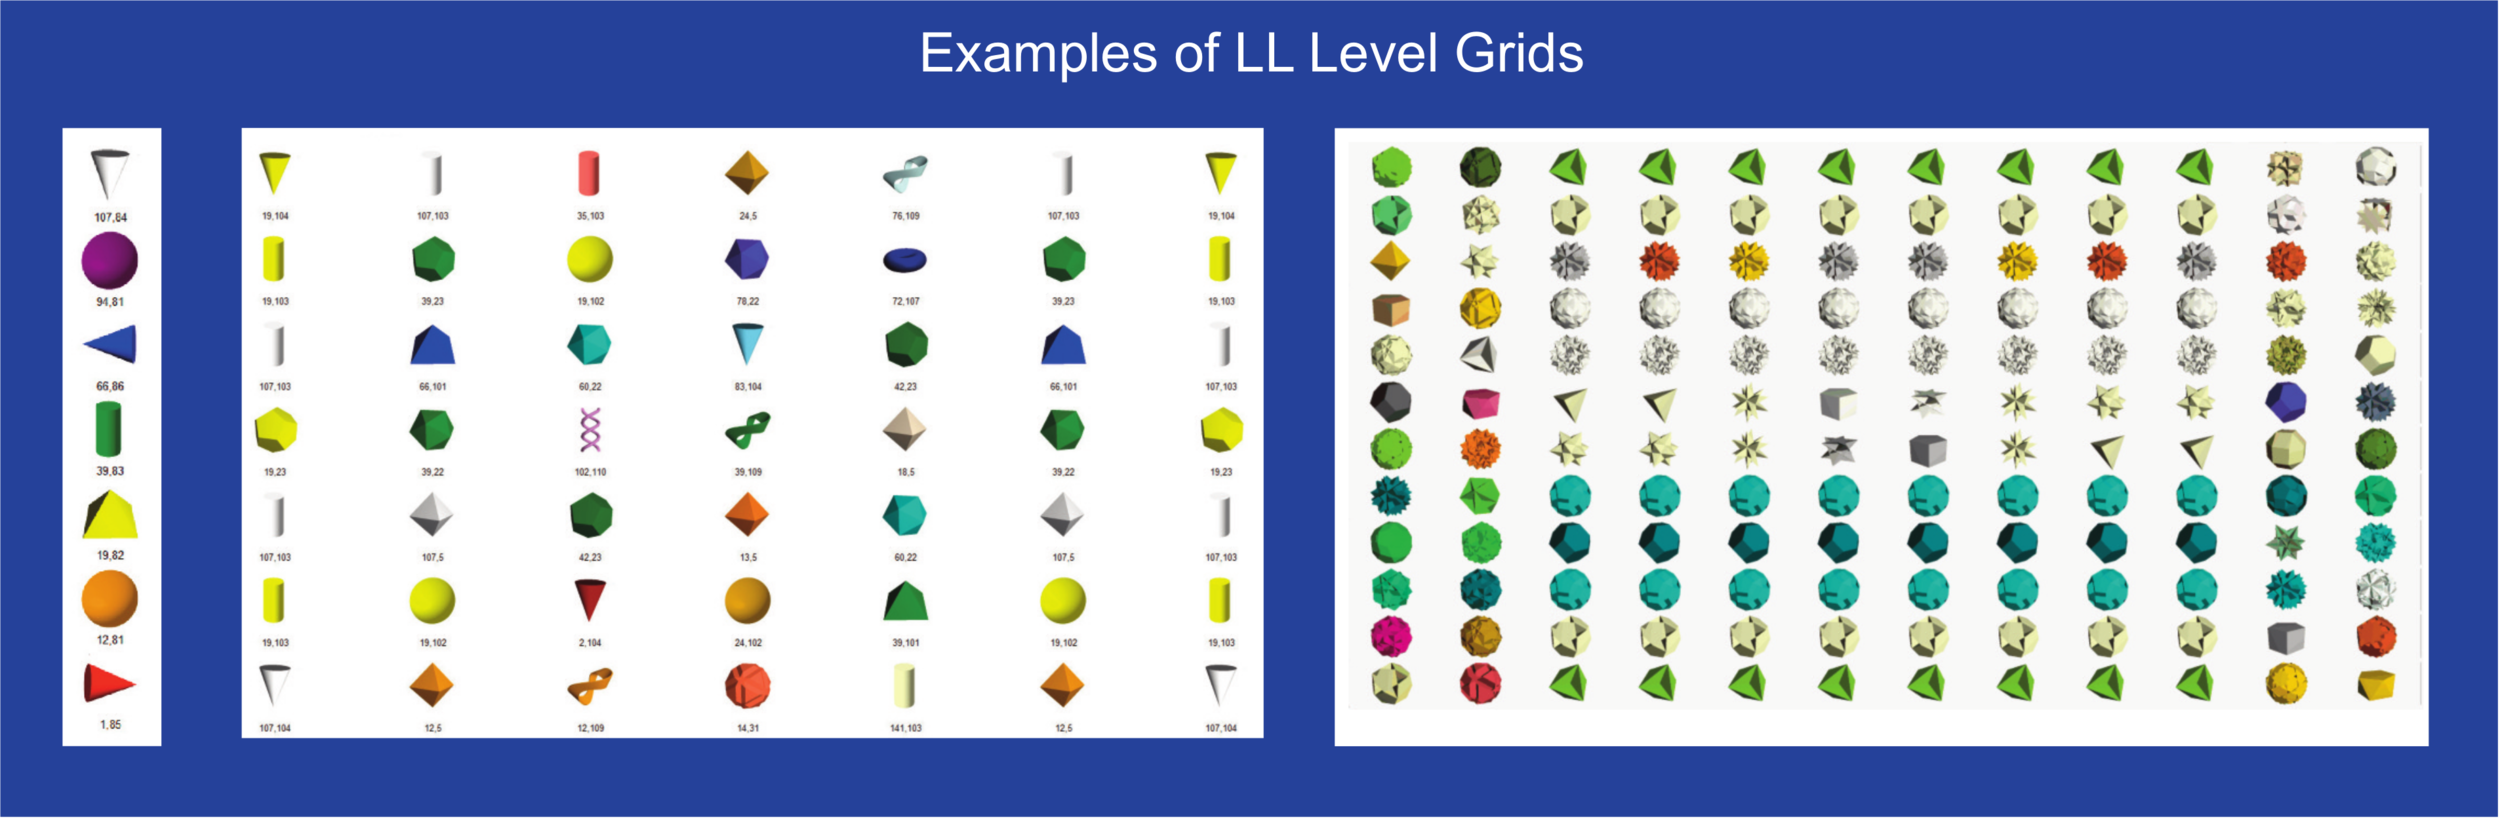 LL Grid Examples combined.png